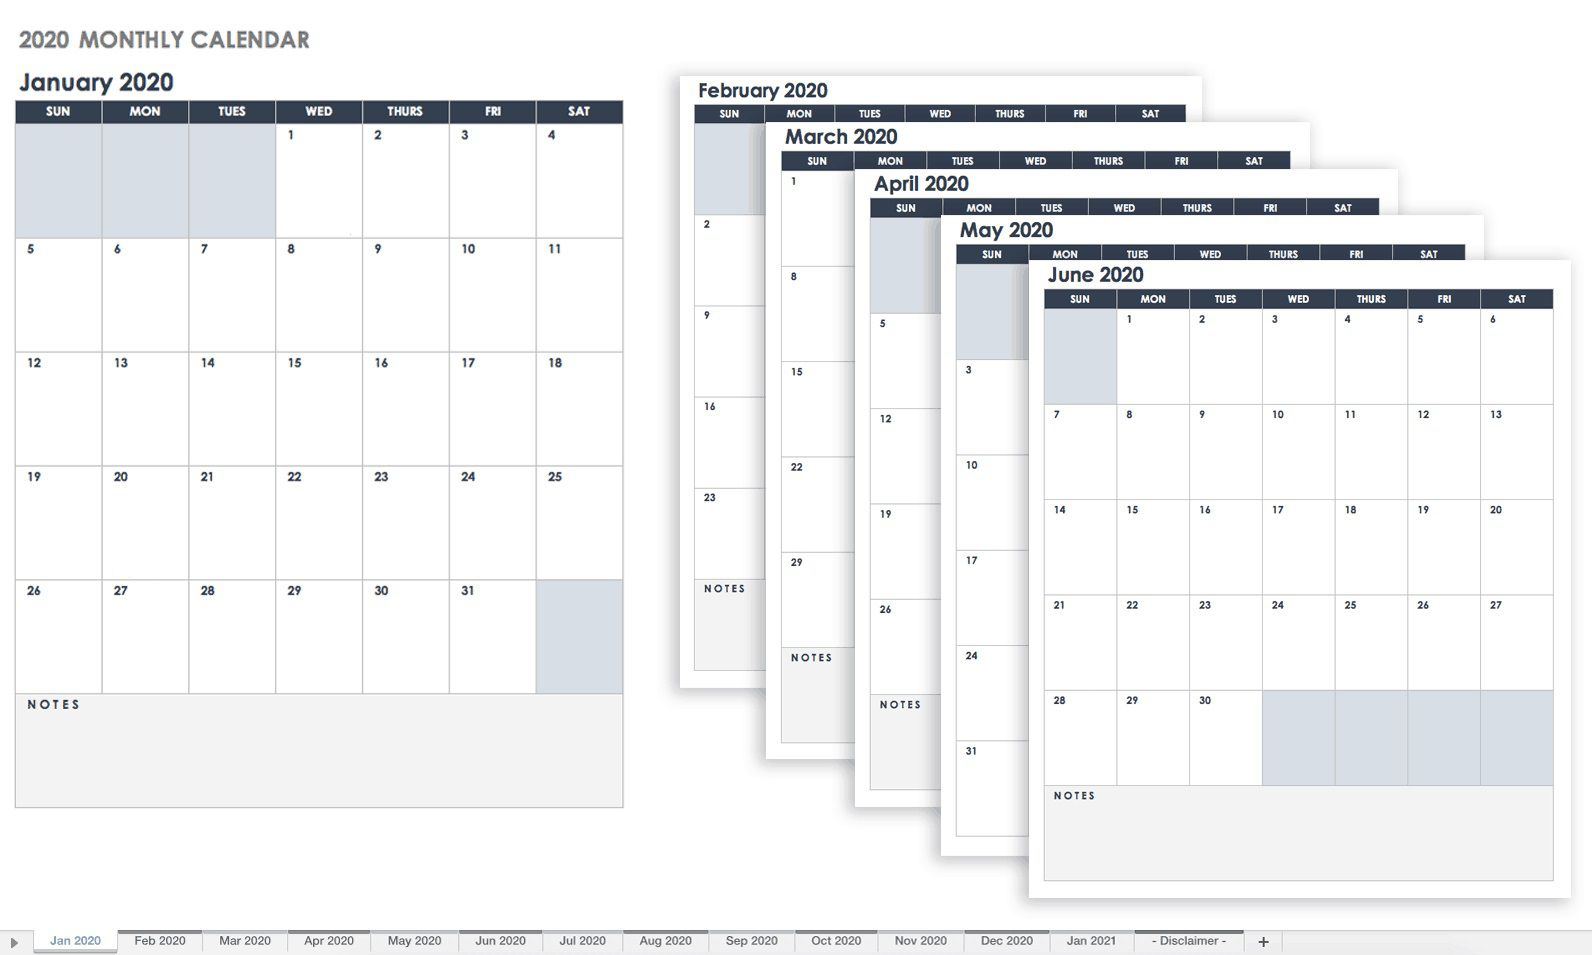 004 Dreaded Google Sheet Calendar Template 2020 Sample  Monthly And 2021 2020-21Full